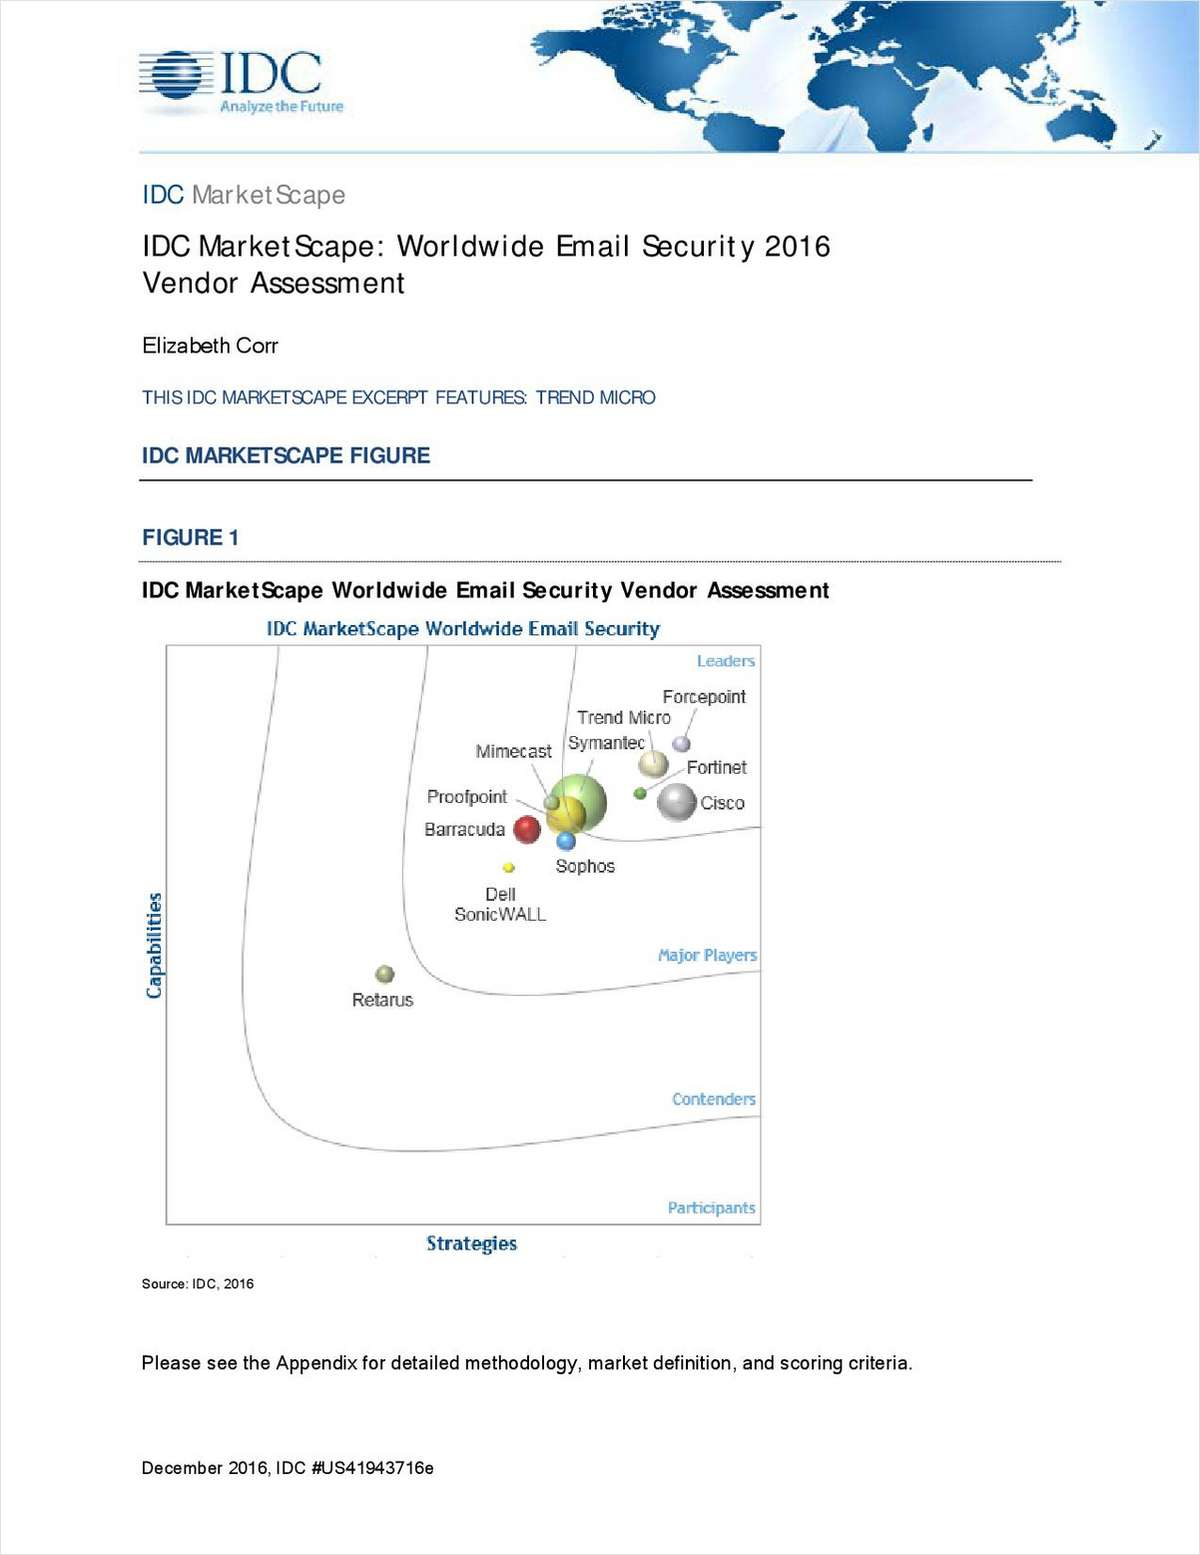 IDC MarketScape: Worldwide Email Security 2016 Vendor Assessment